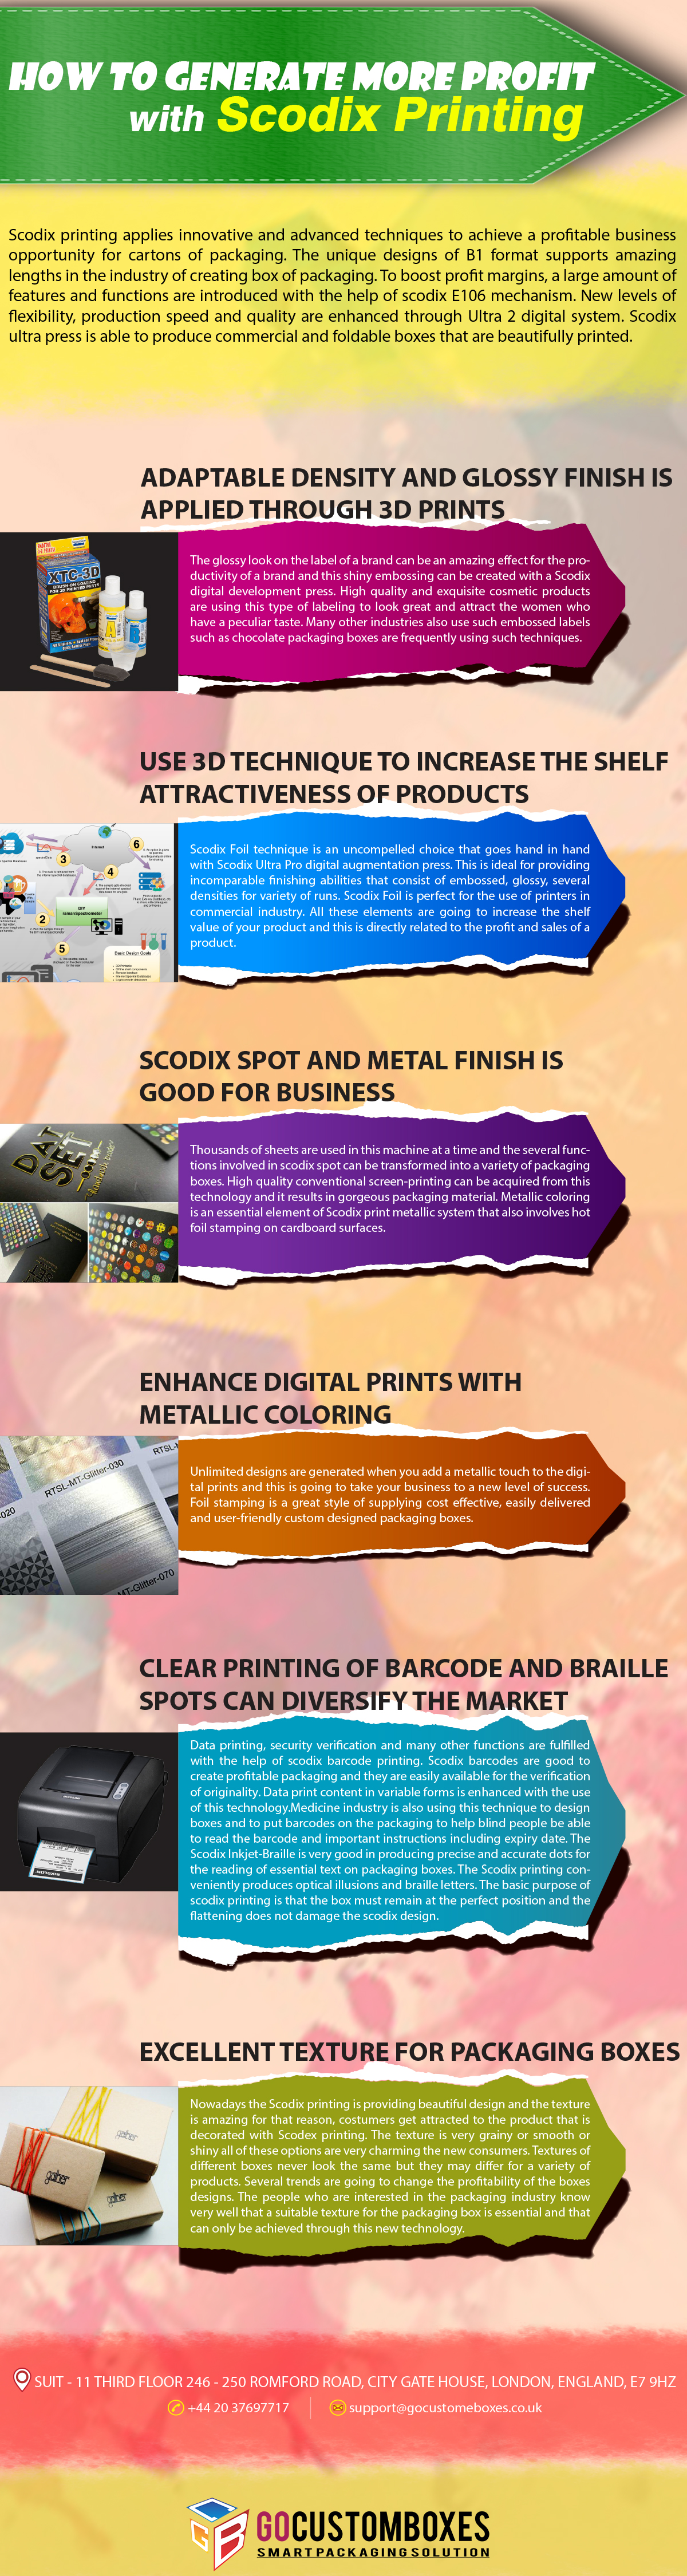 How to Generate More Profit with Scodix Printing?